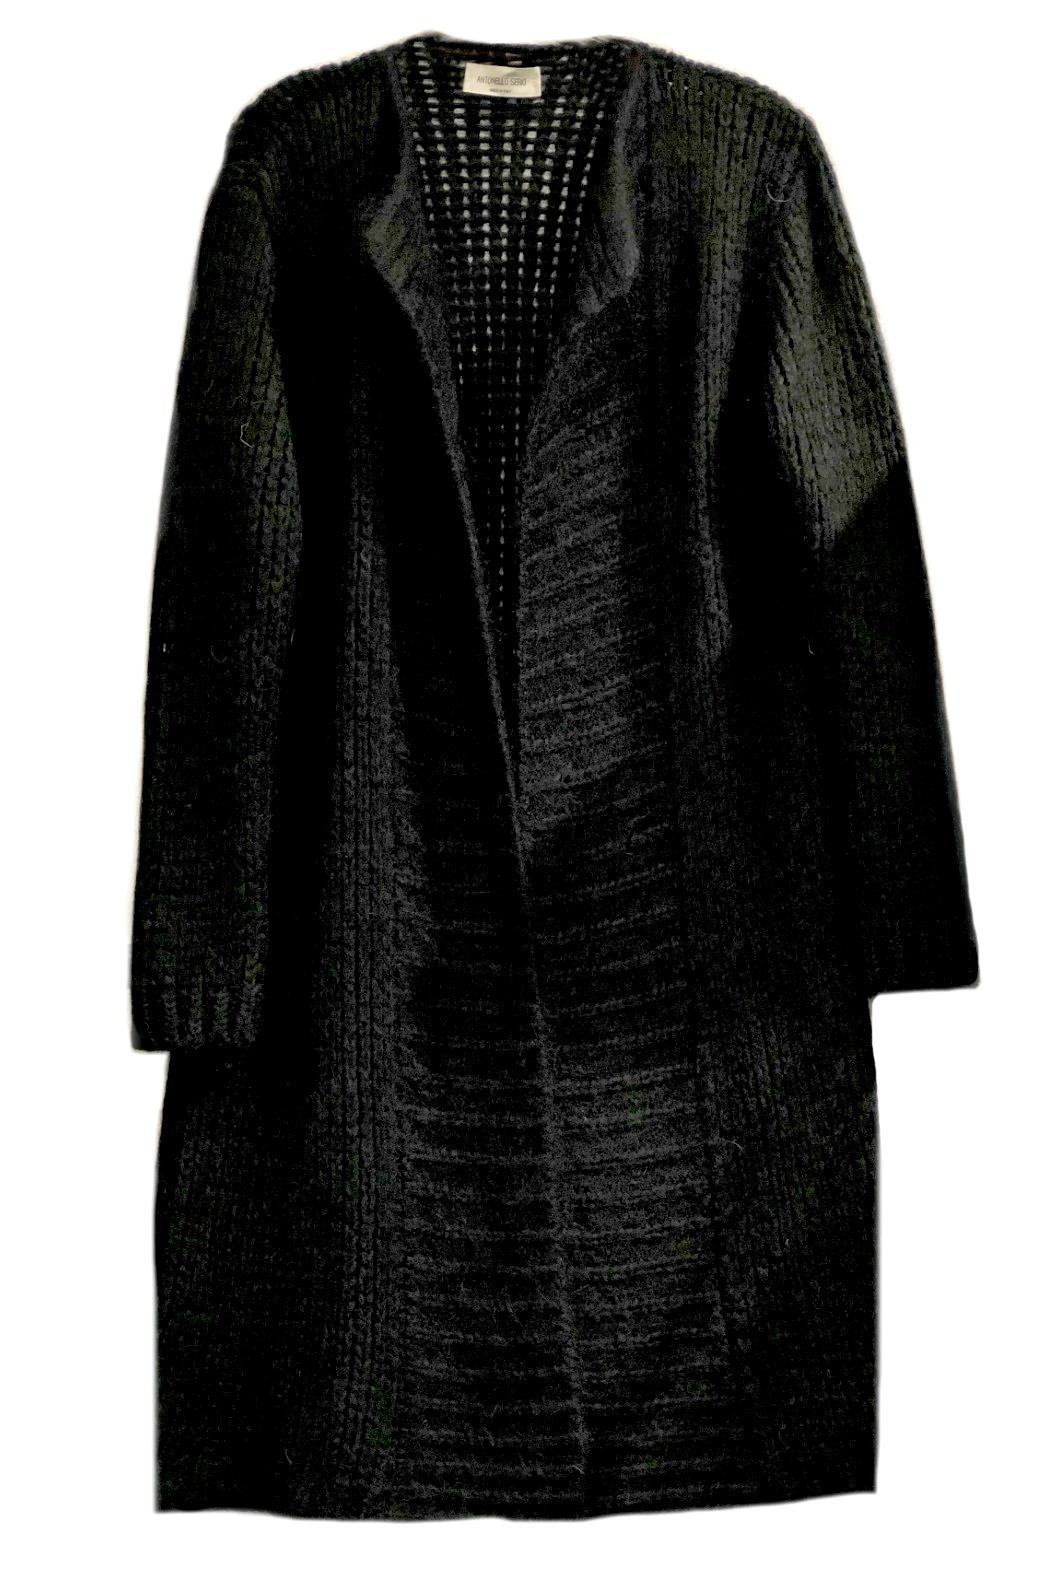 ANTONELLO SERIO Knitted Maxi Cardigan - Front Cropped Image